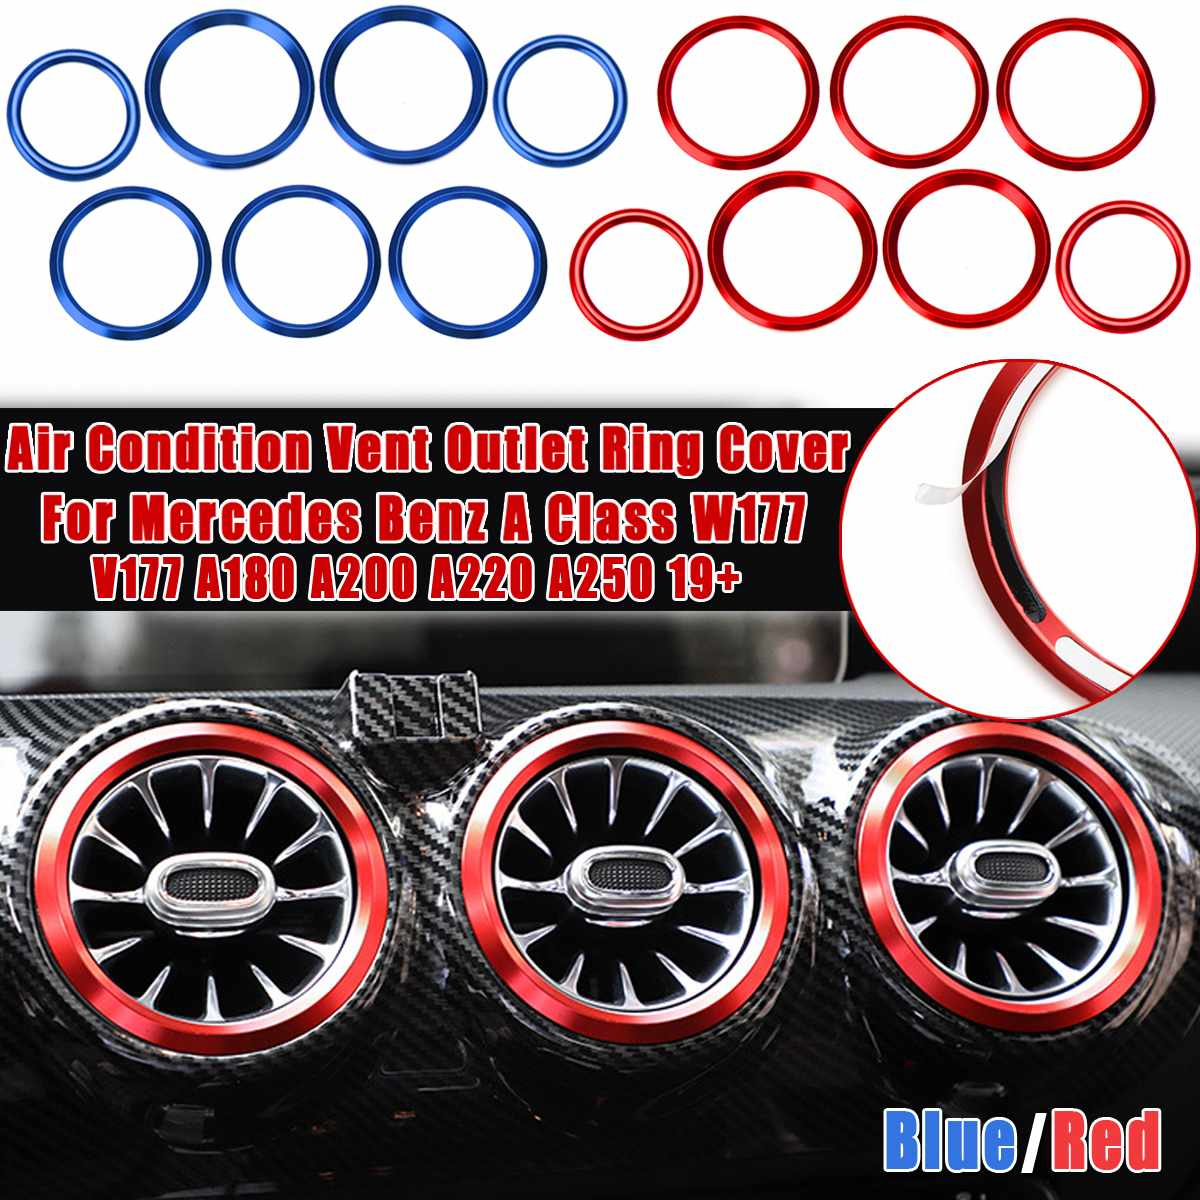 7pcs Car Air Condition Vent Outlet Ring Cover Trim For Mercedes for BENZ A Class W177 V177 A180 <font><b>A200</b></font> A220 A250 <font><b>2019</b></font>+ Red Blue image